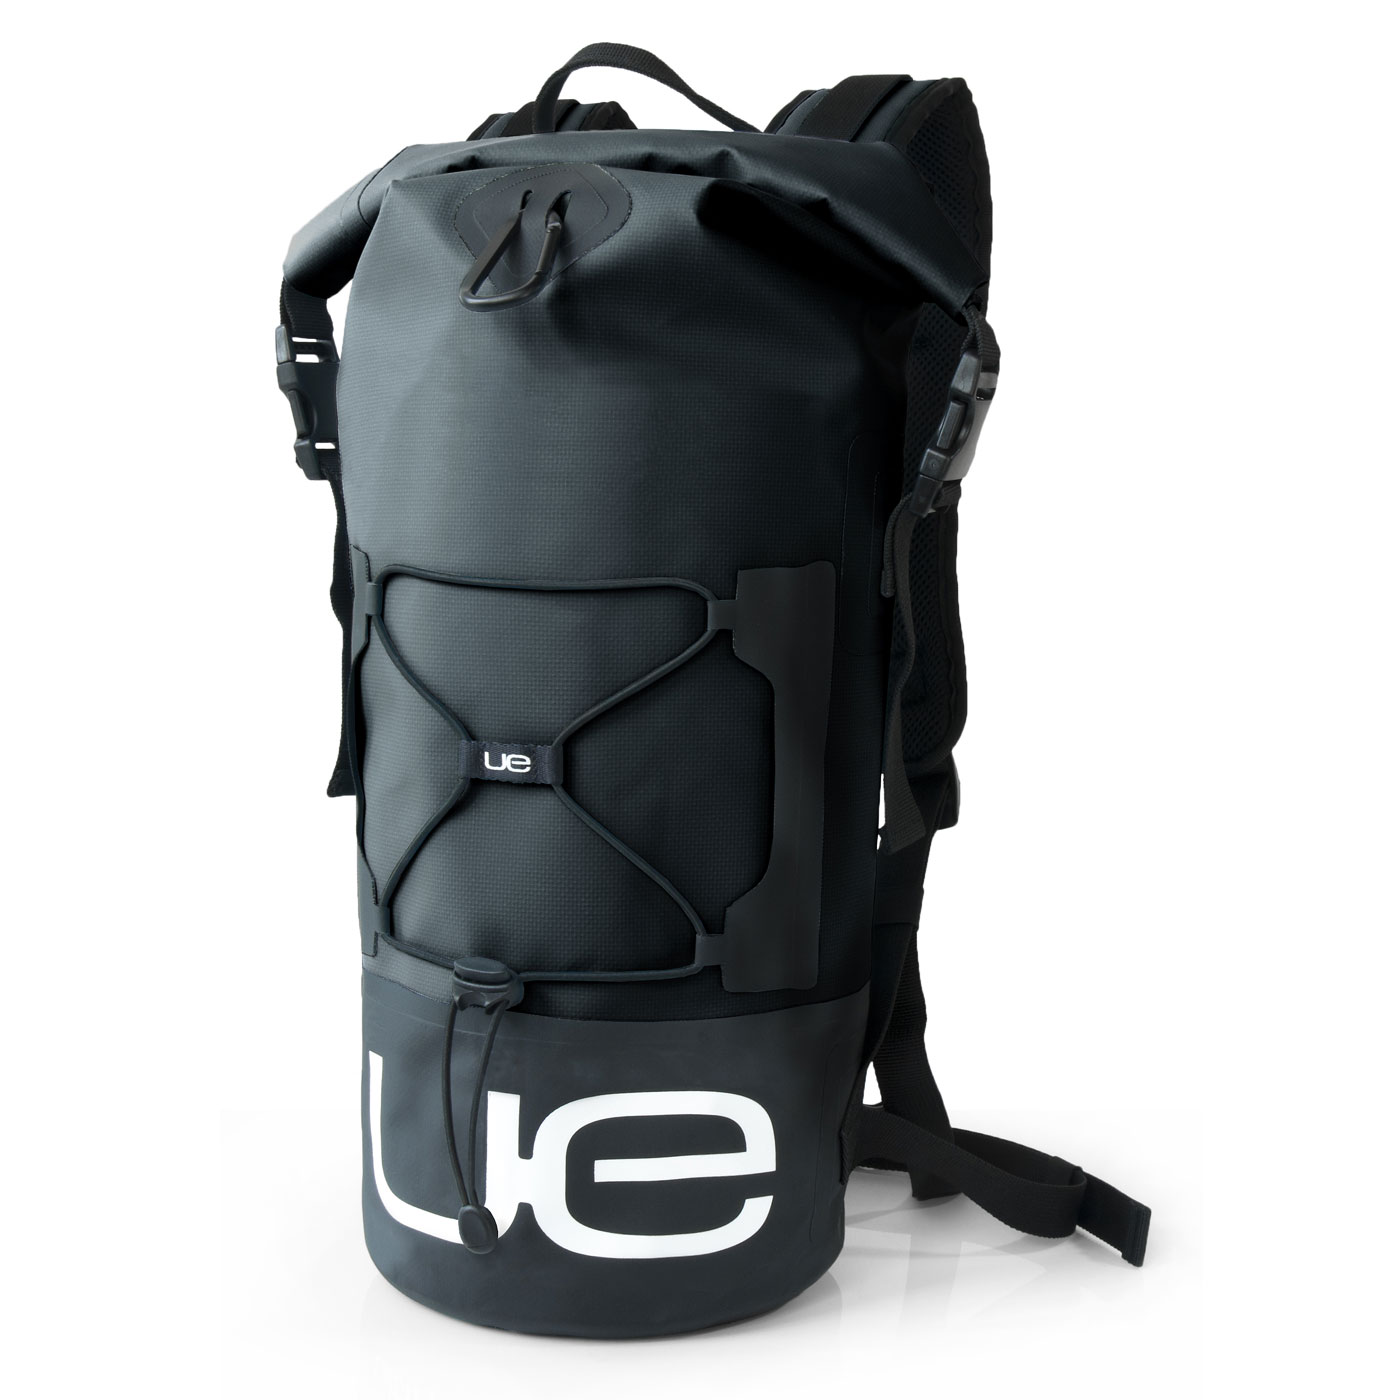 Ue boom 2 bleu backpack waterproof offert achat for Housse ultimate ears boom 2